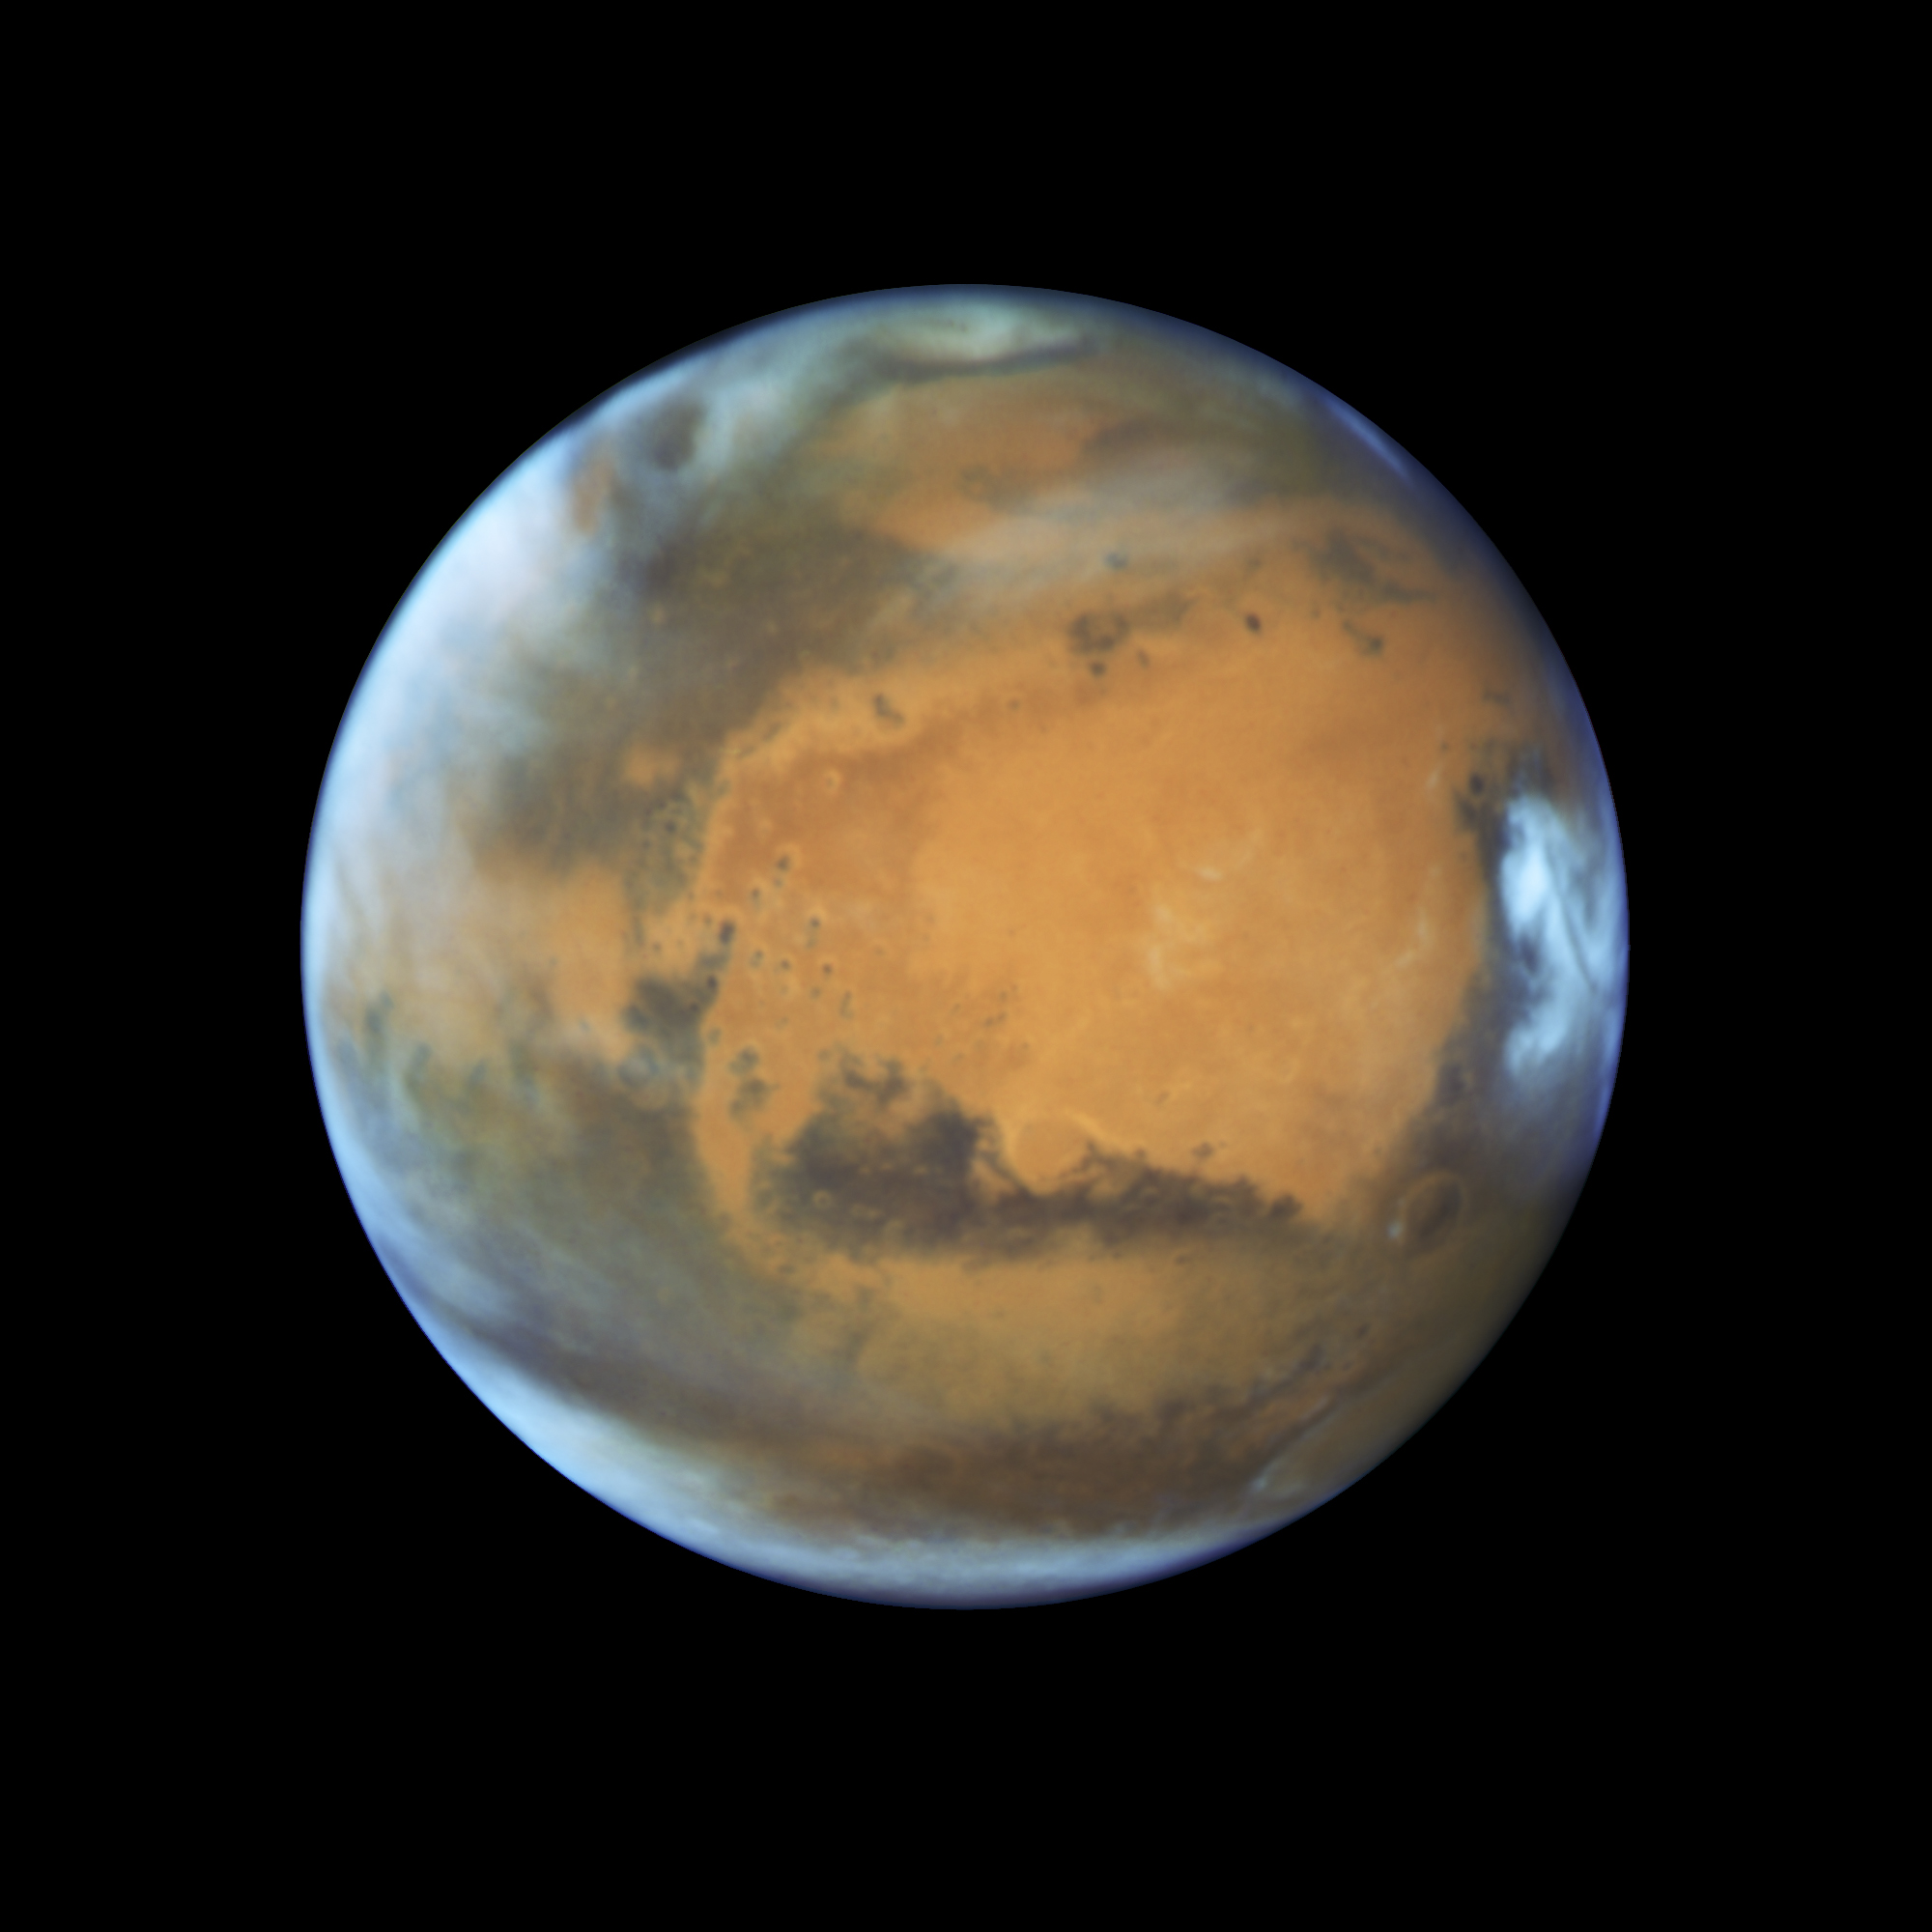 Mars image from Hubble Space Telescope